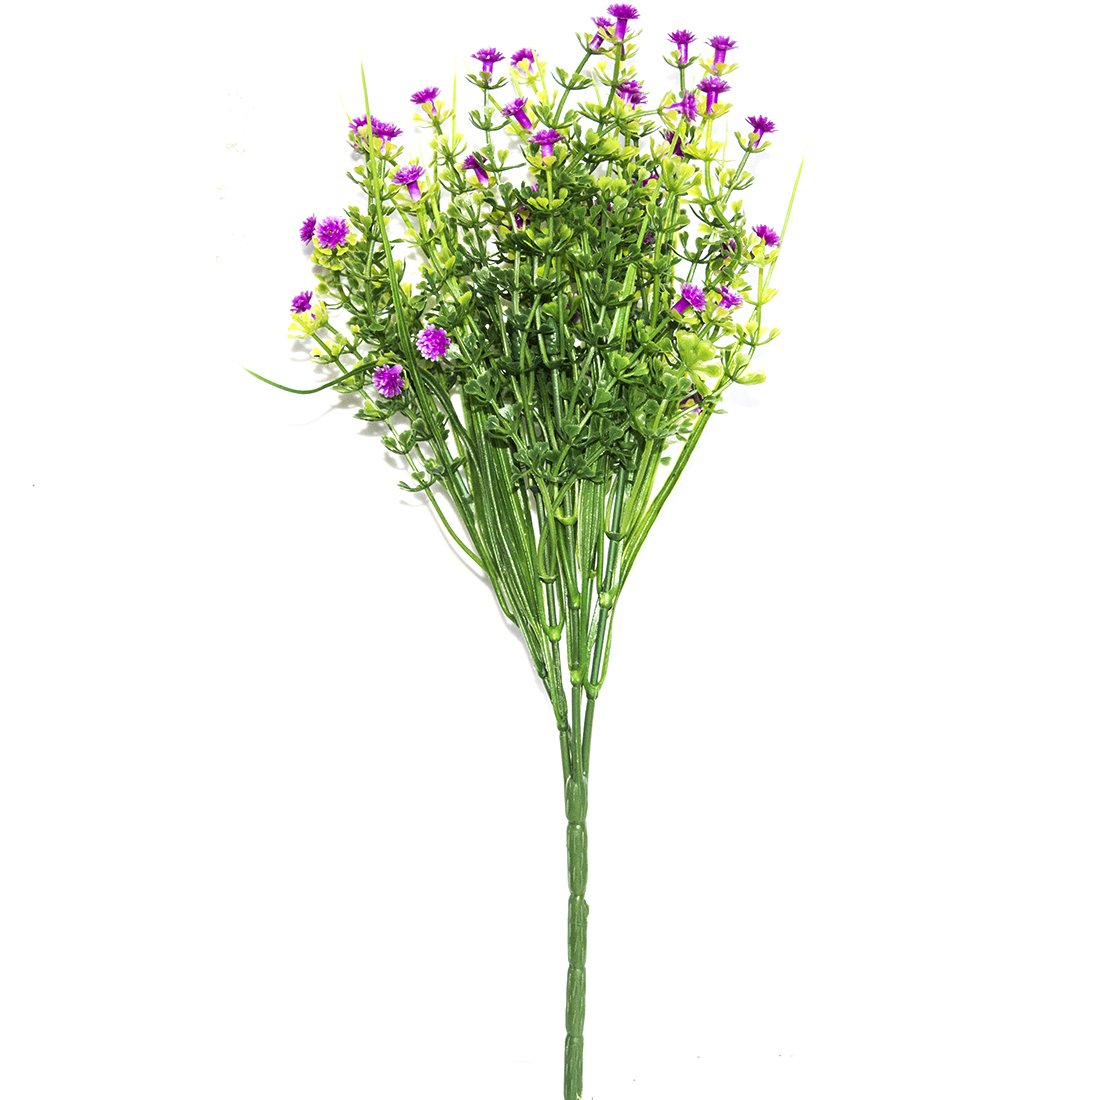 1 Branch Small Artificial Plants Grass Fake Floral Plastic Silk Eucalyptus Flowers For Table Decor ASTrade LEPAZIK3456